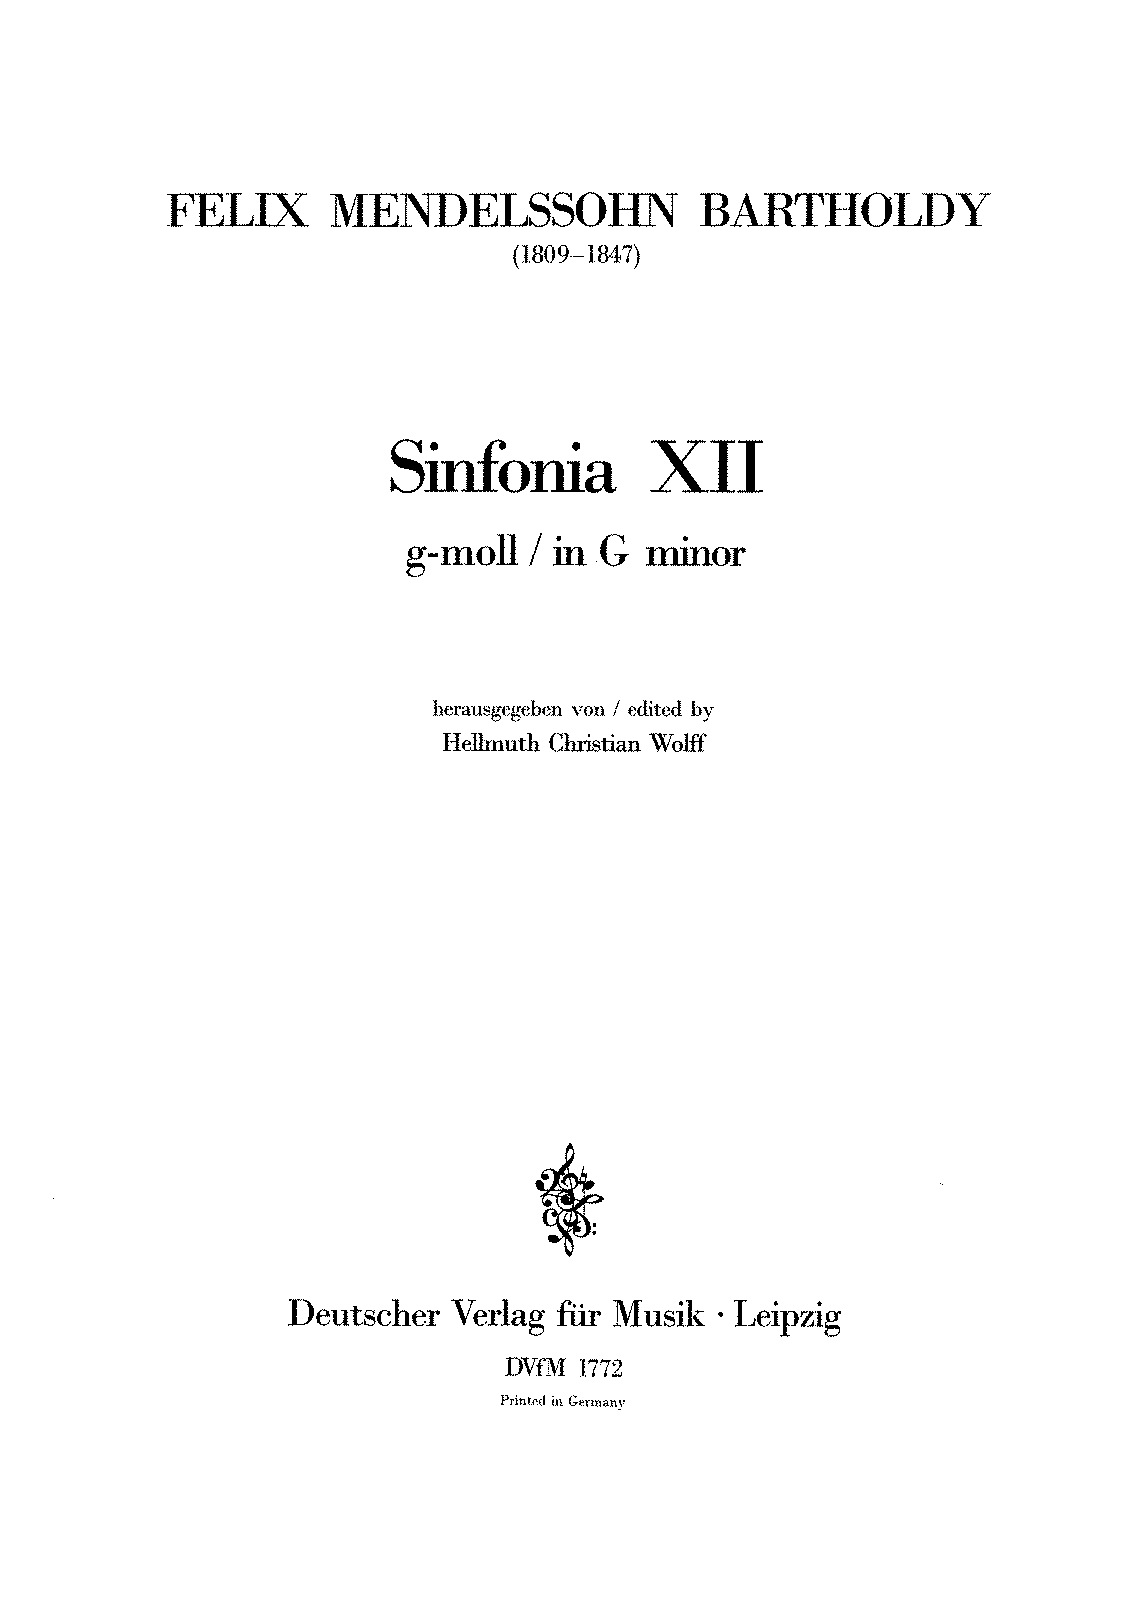 PMLP208063-Mendelssohn, Felix - Sinfonia for String no. 12 in G minor MWV N 12.pdf